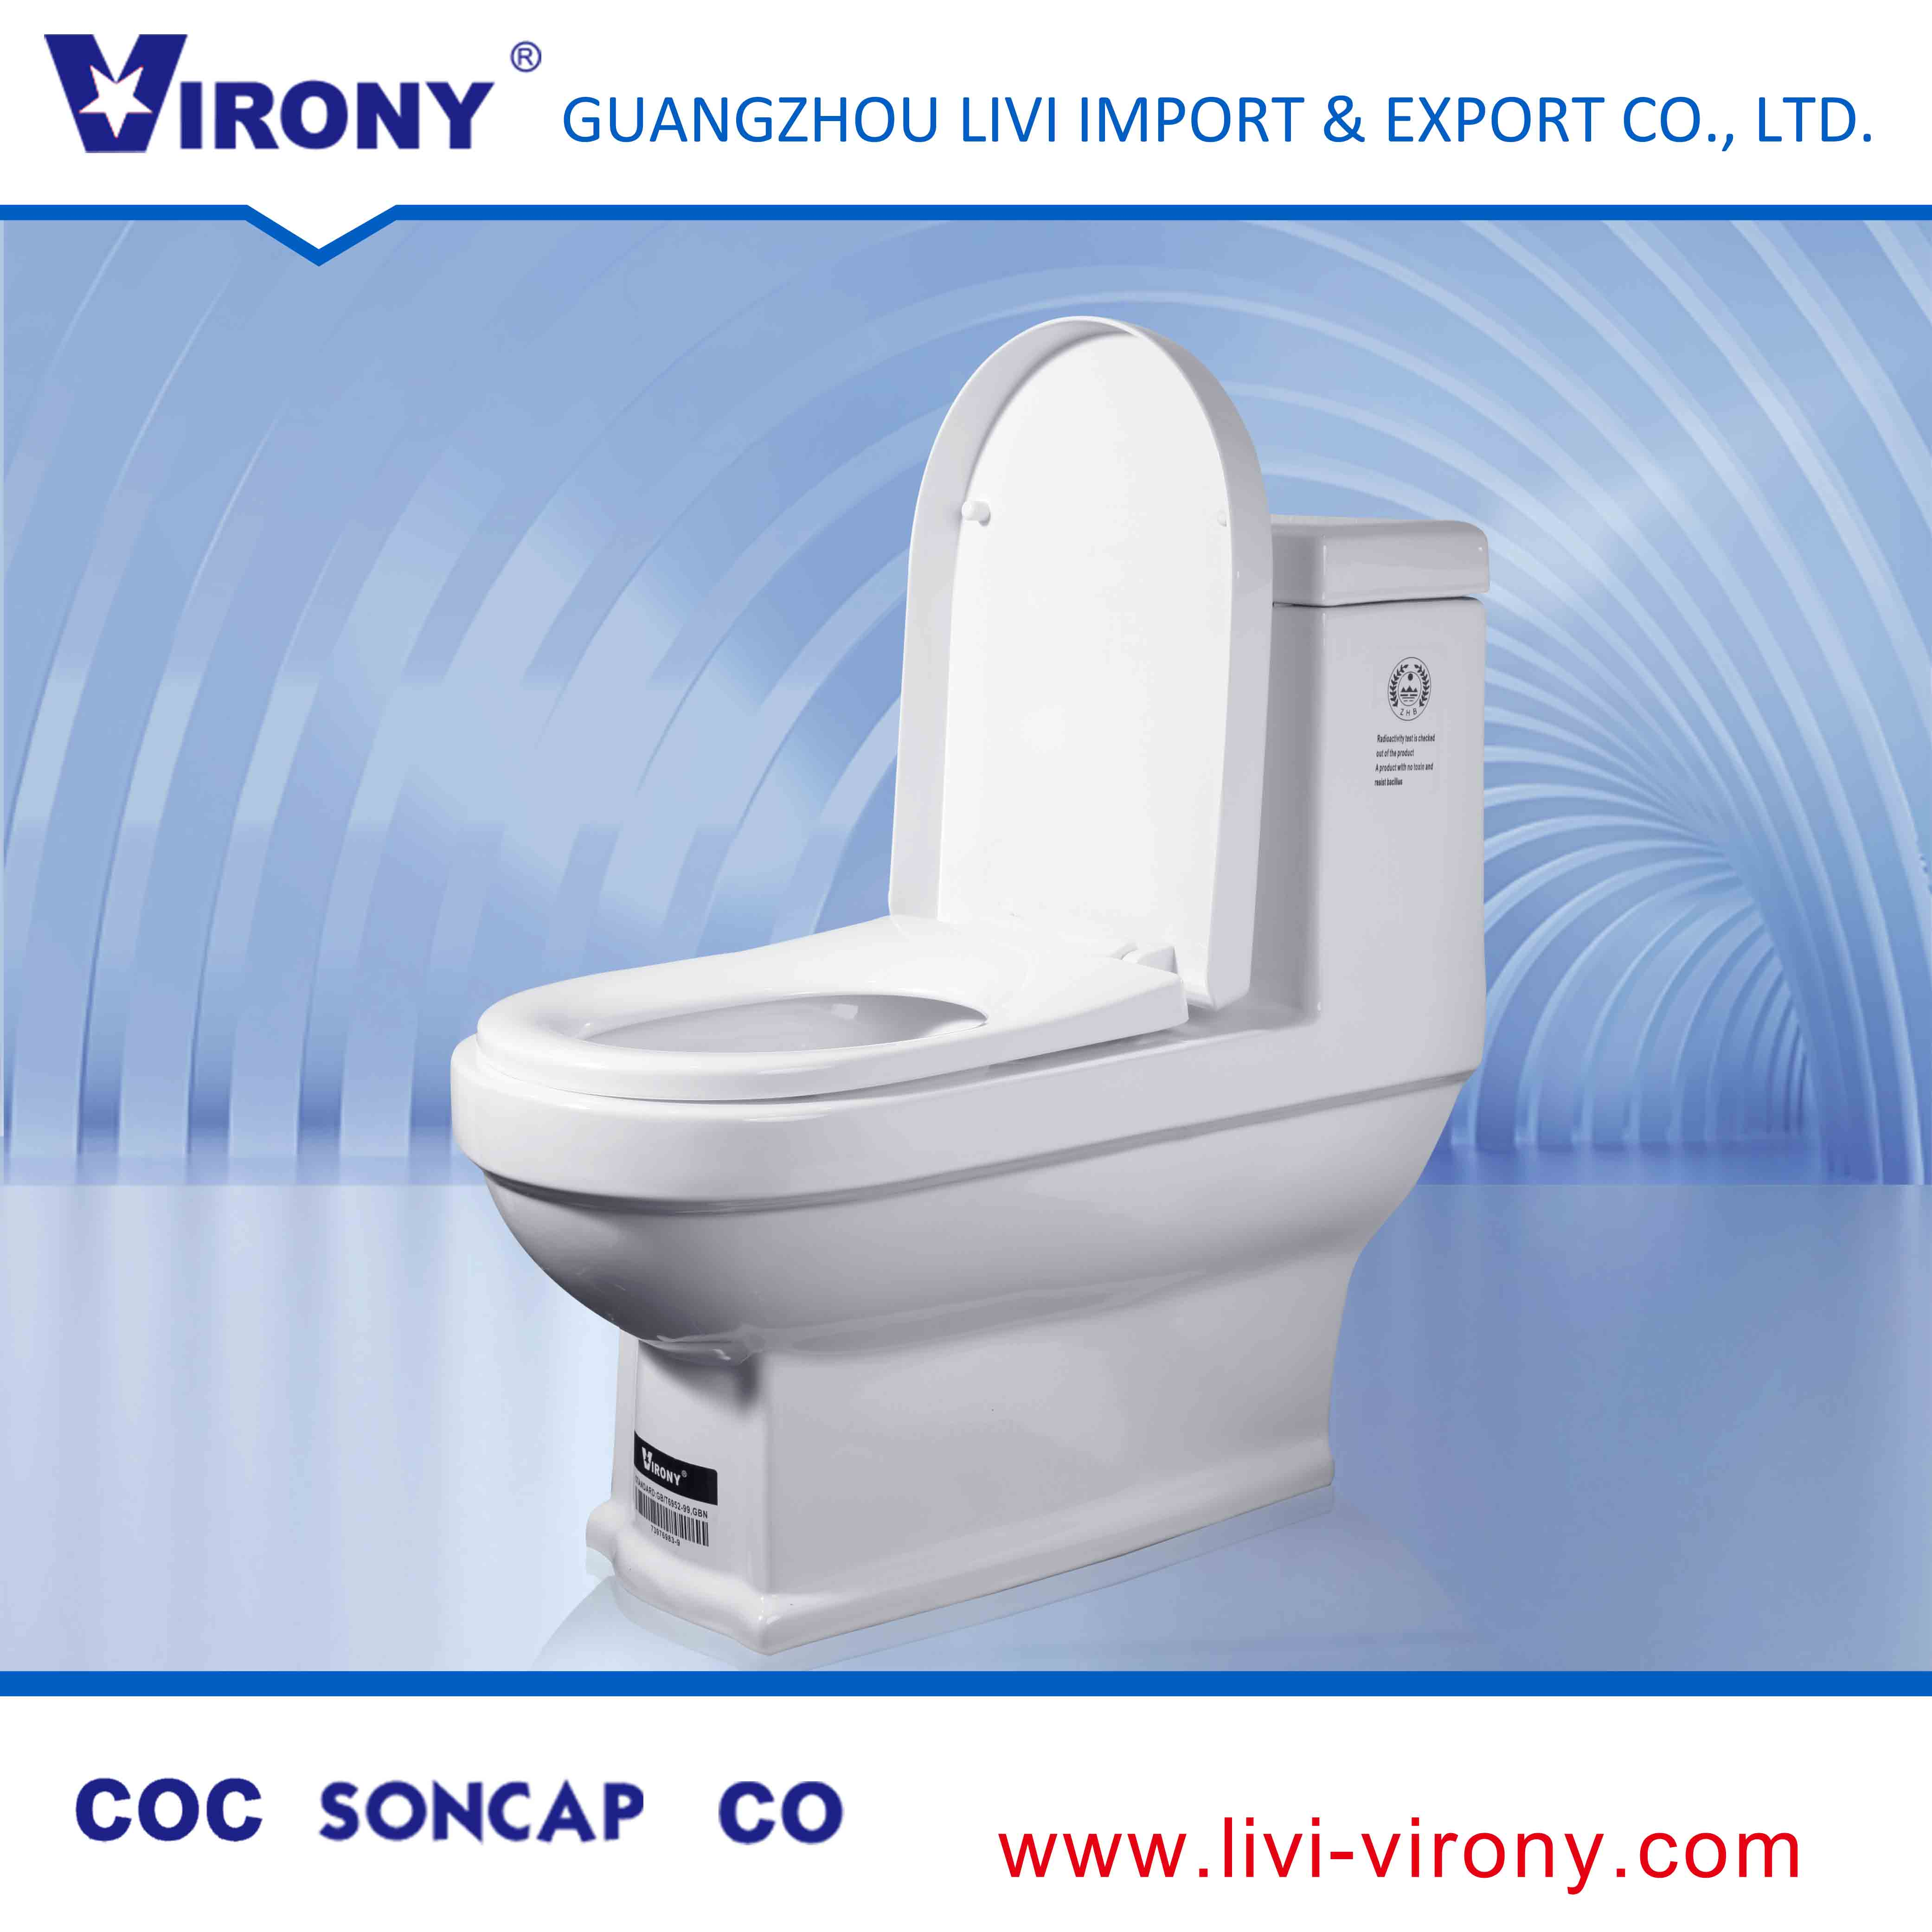 Wc Japanese, Wc Japanese Suppliers and Manufacturers at Alibaba.com